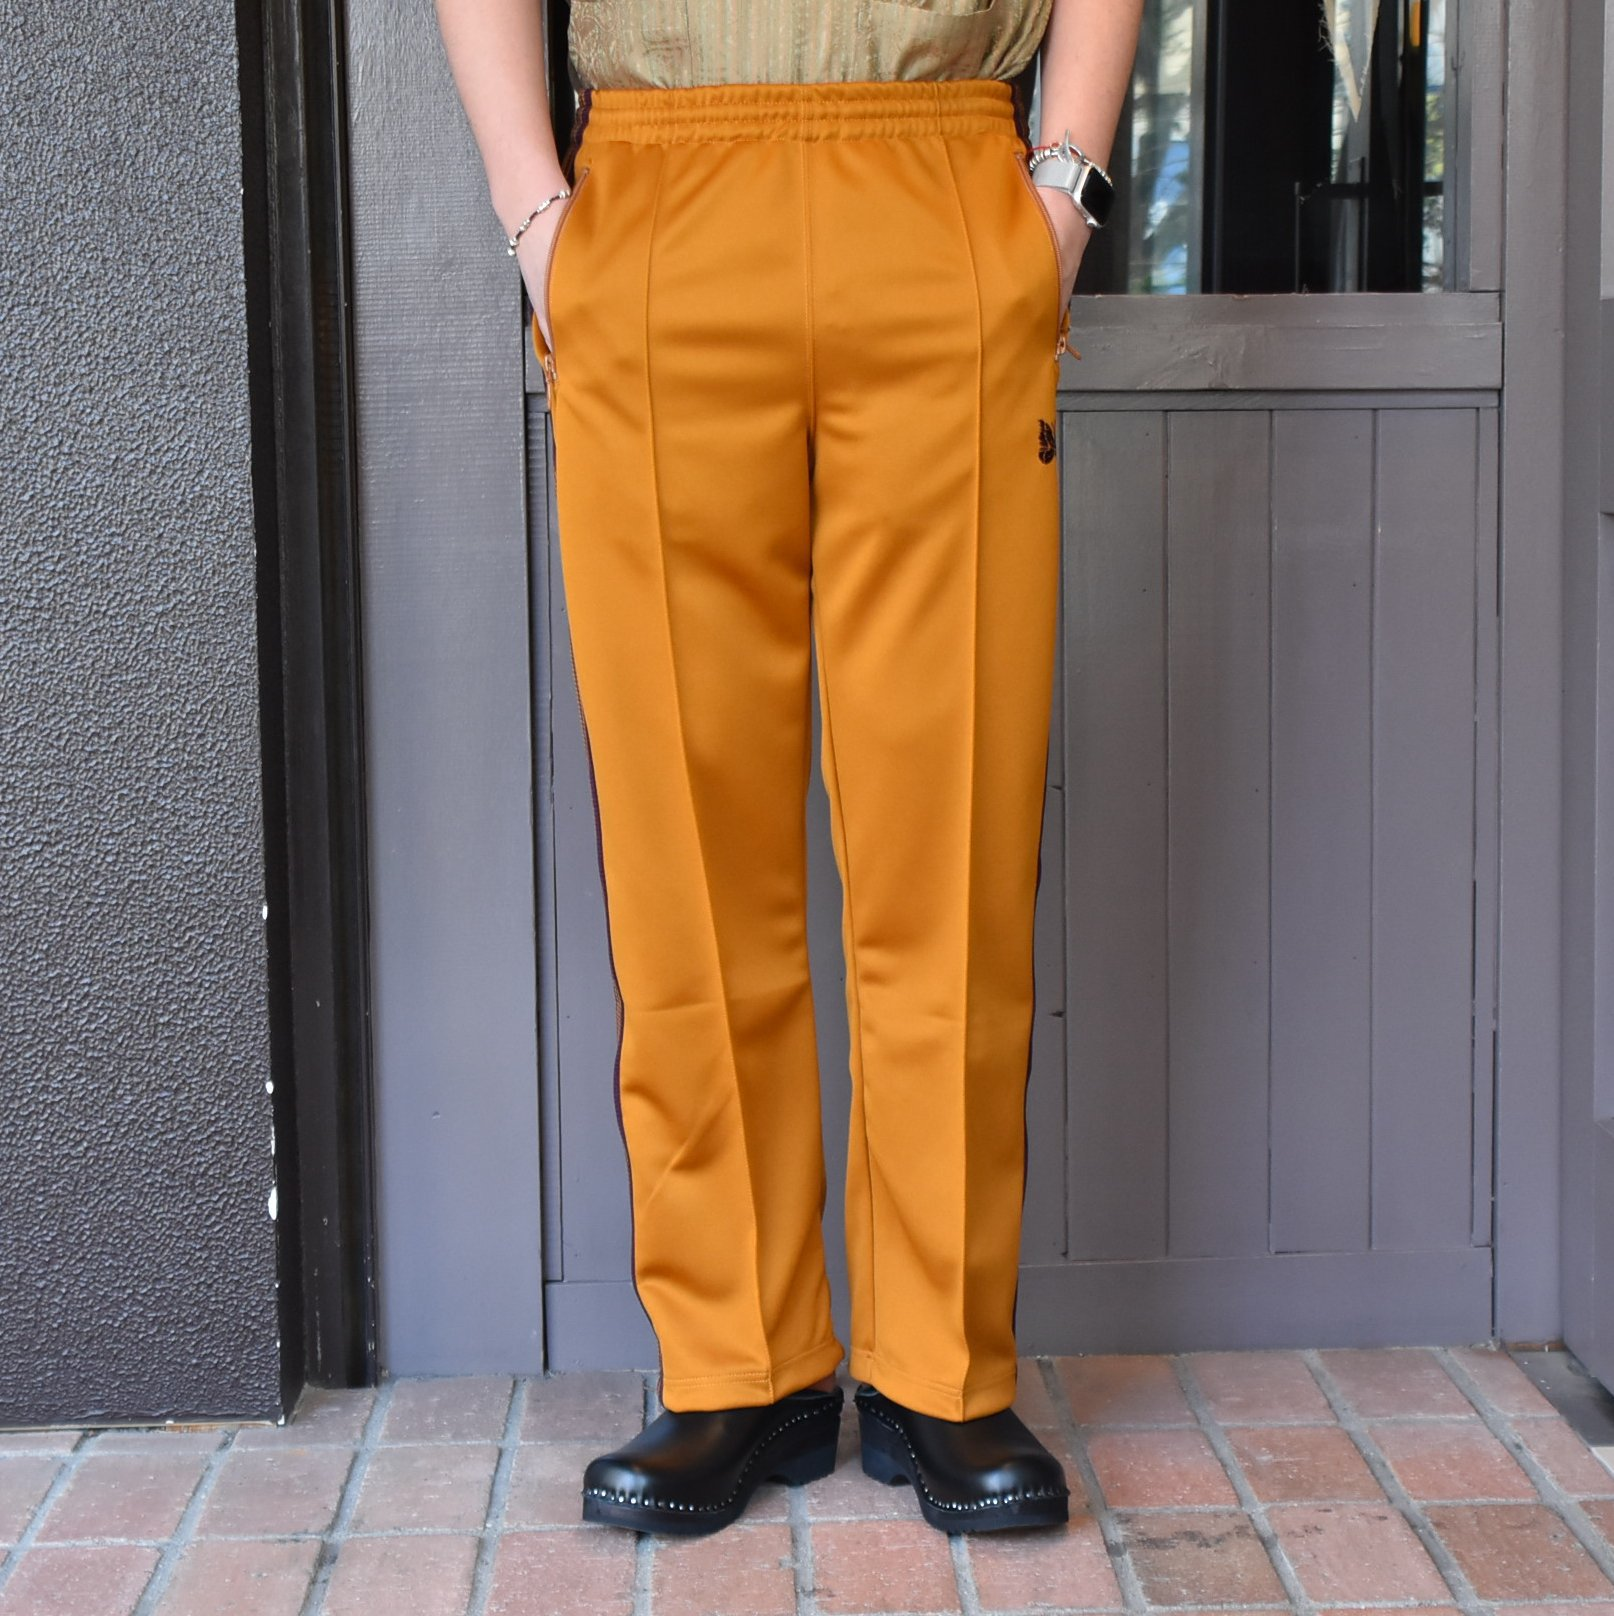 [2021]NEEDLES(ニードルス) TRACK PANT POLY SMOOTH -MUSTARD- #IN181(5)